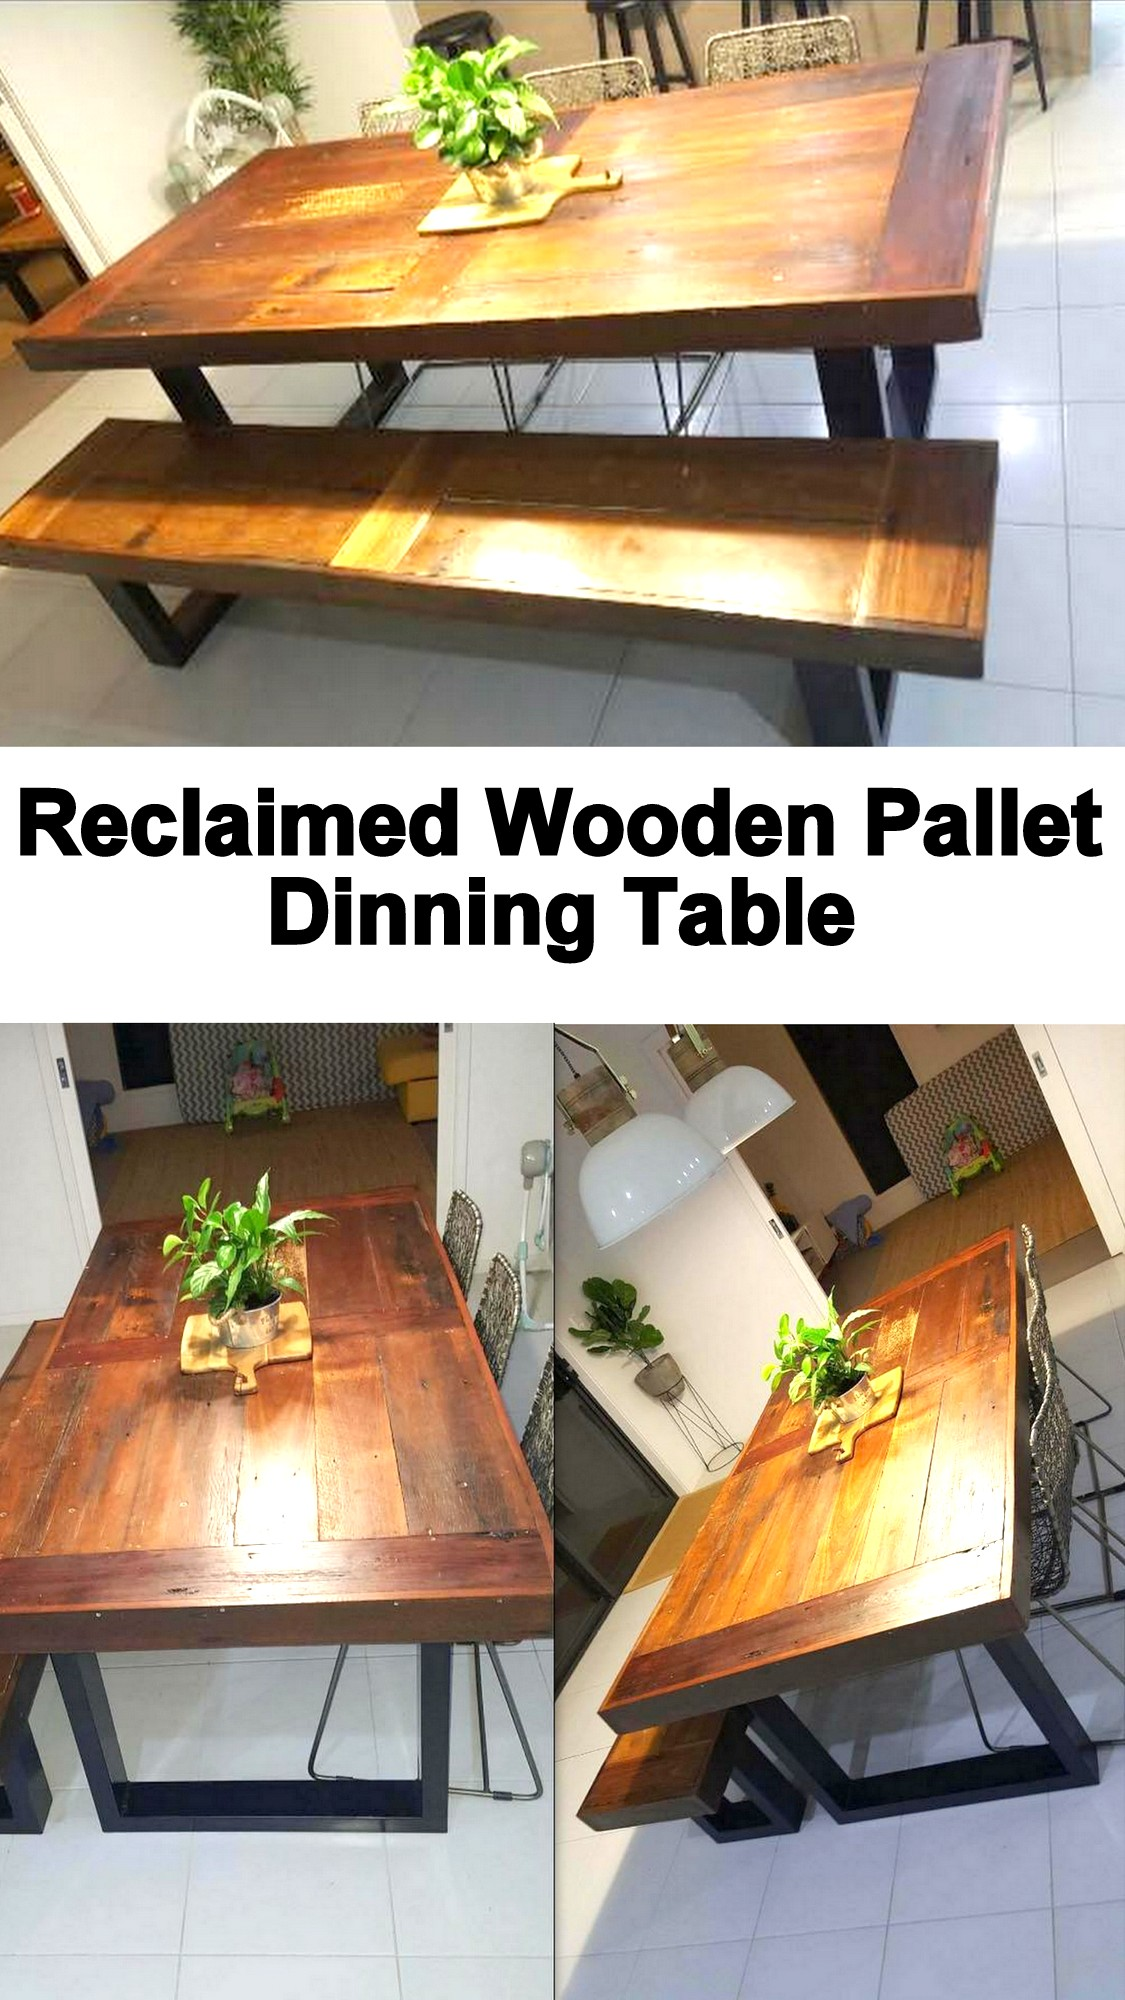 Reclaimed Wooden Pallet Dinning Table